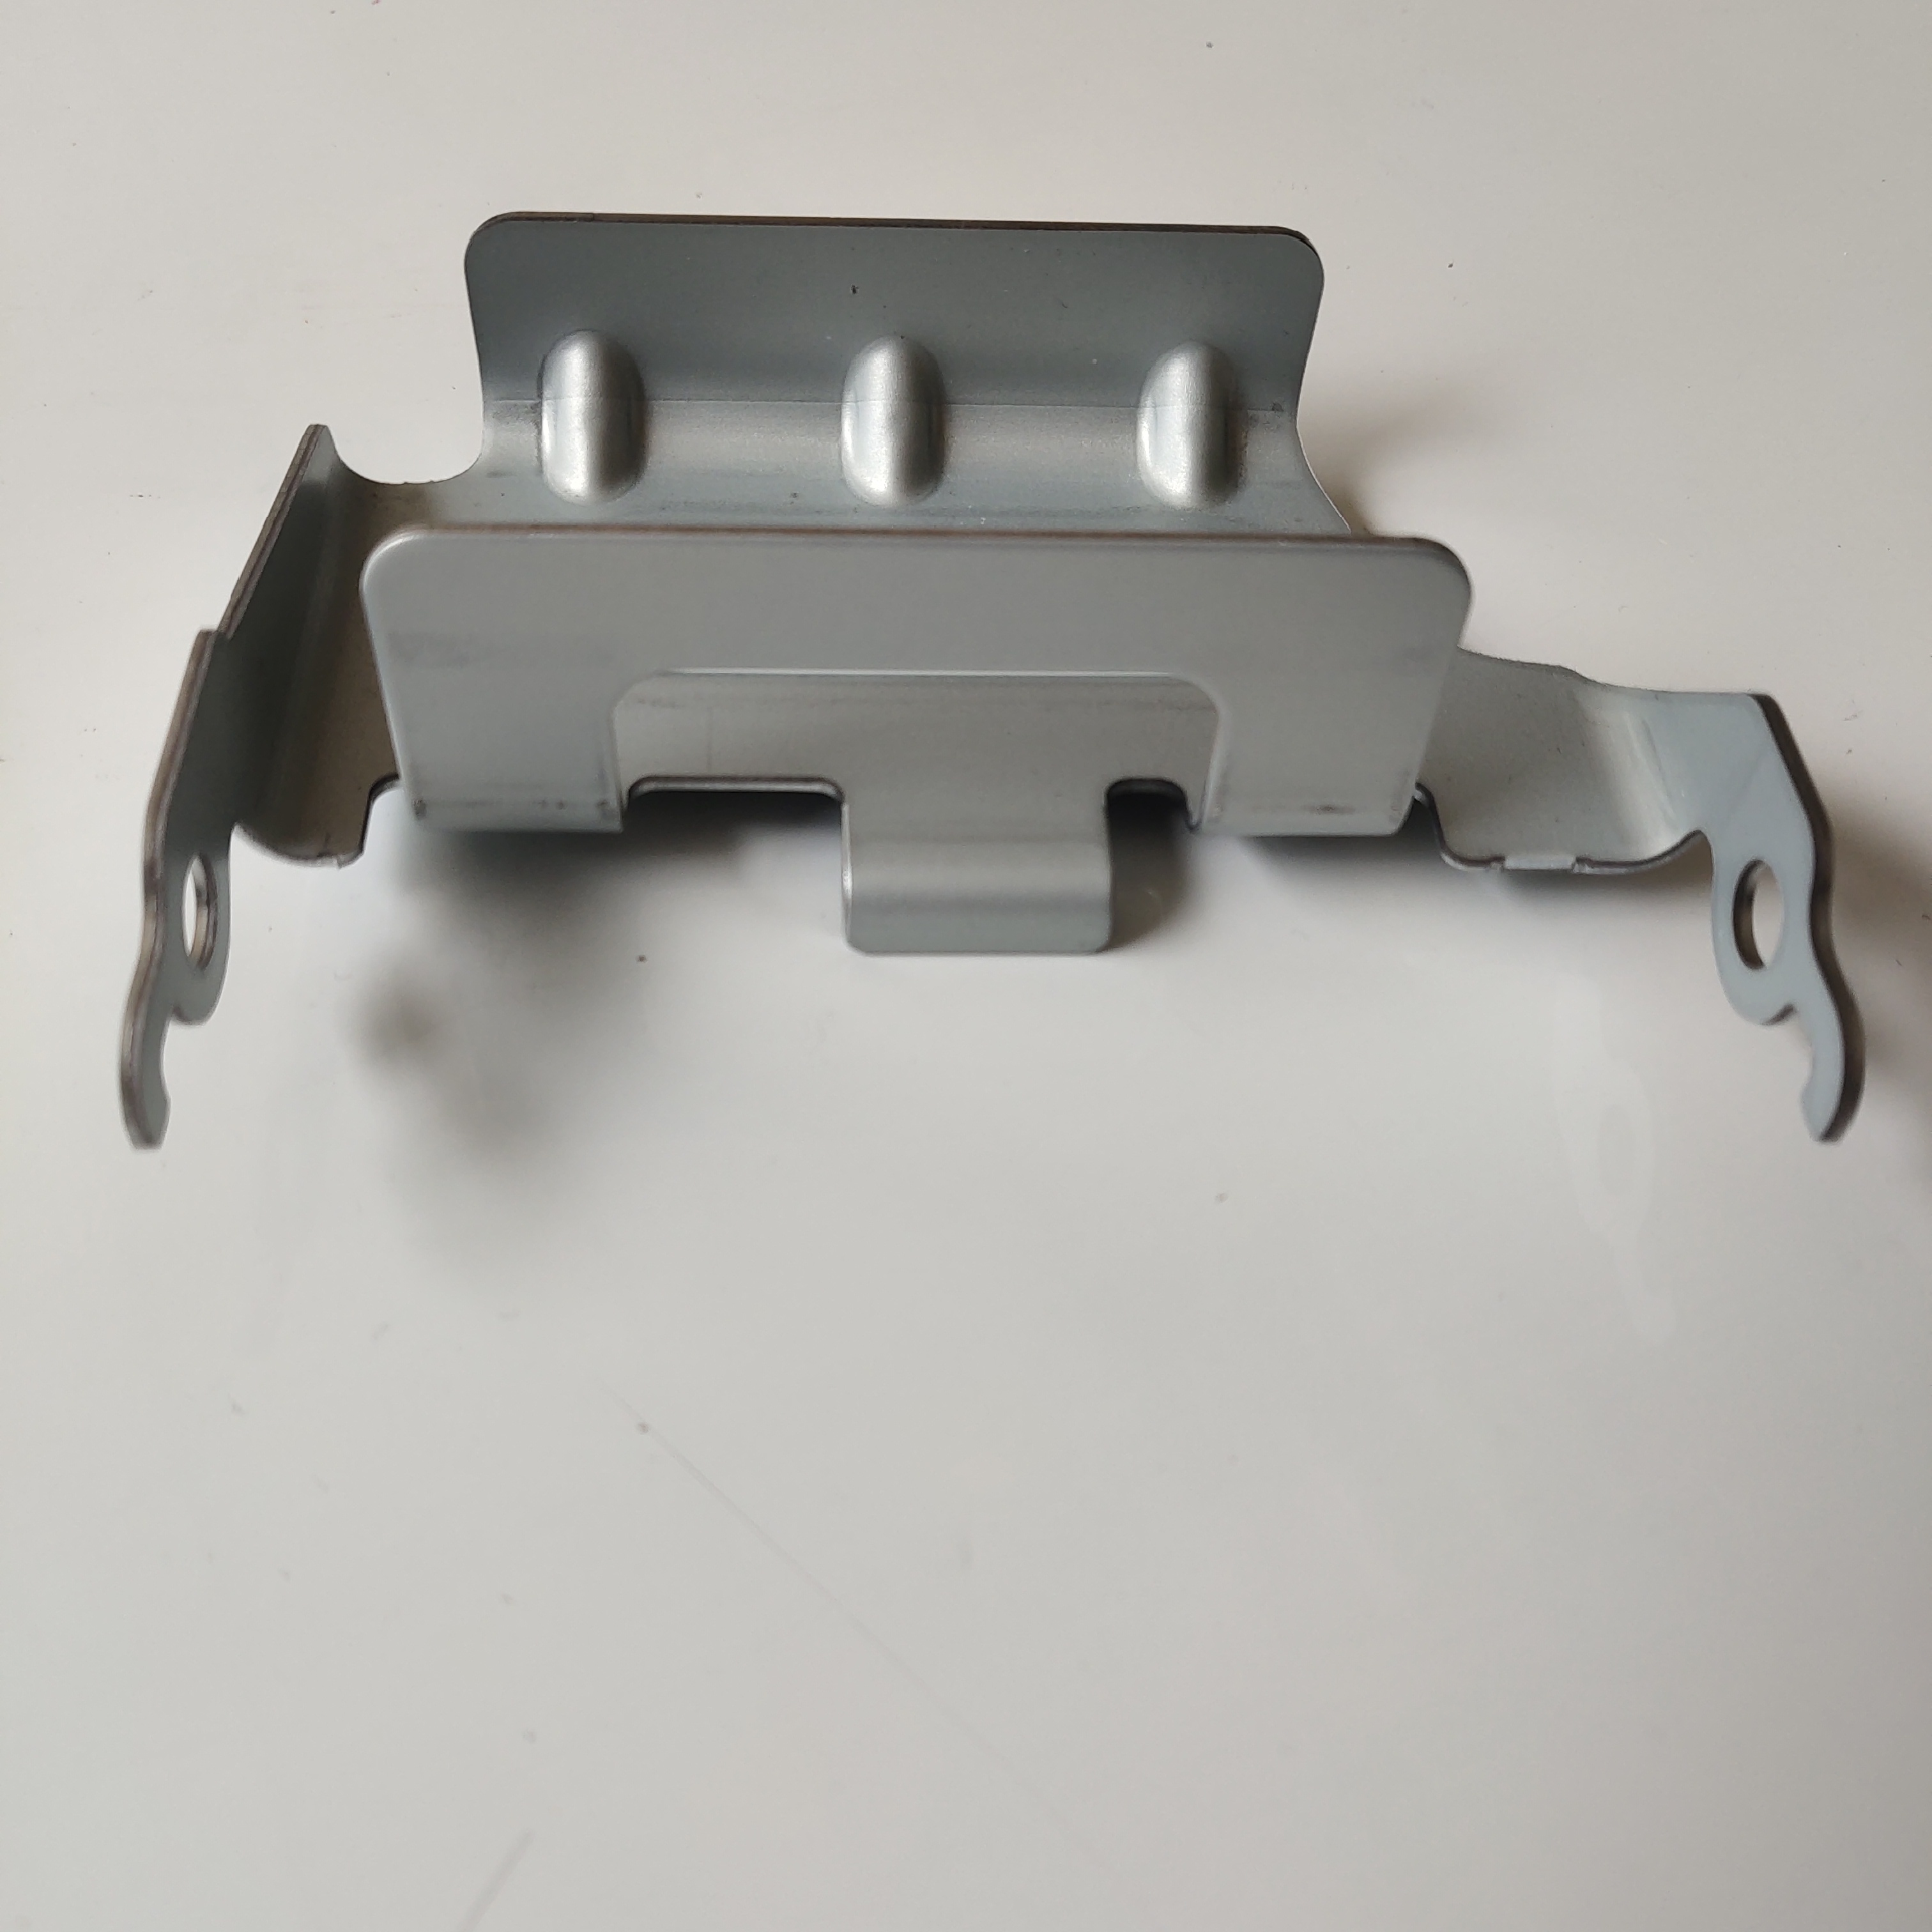 Fuel pump bracket Stainless steel carbon steel precision CNC engine custom parts are widely used in aircraft engines